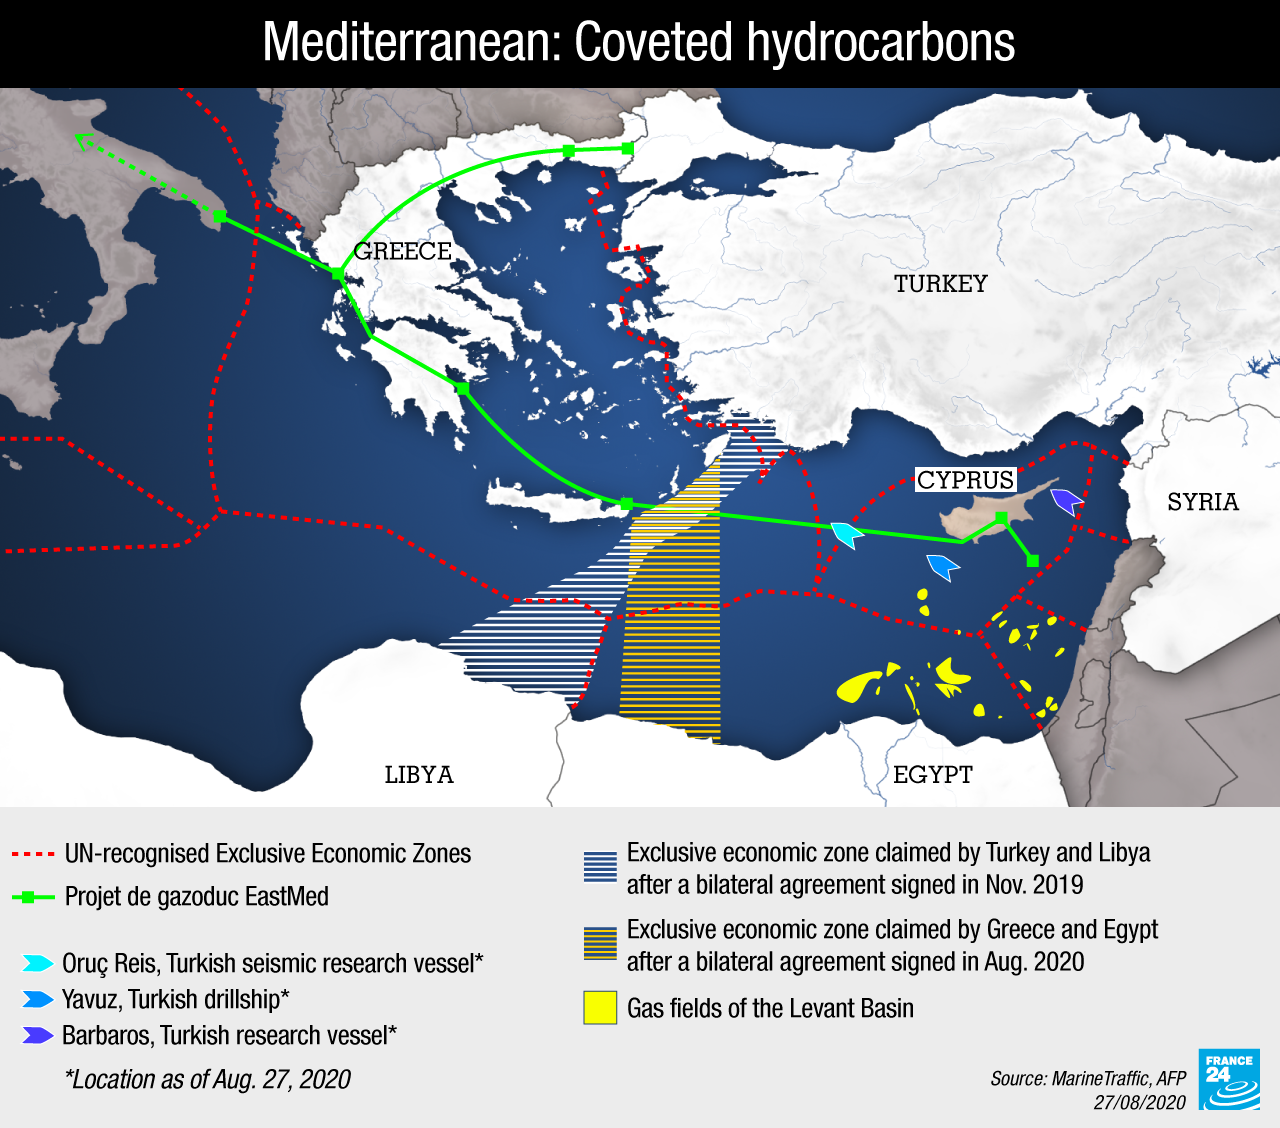 Hydrocarbons in the Mediterranean